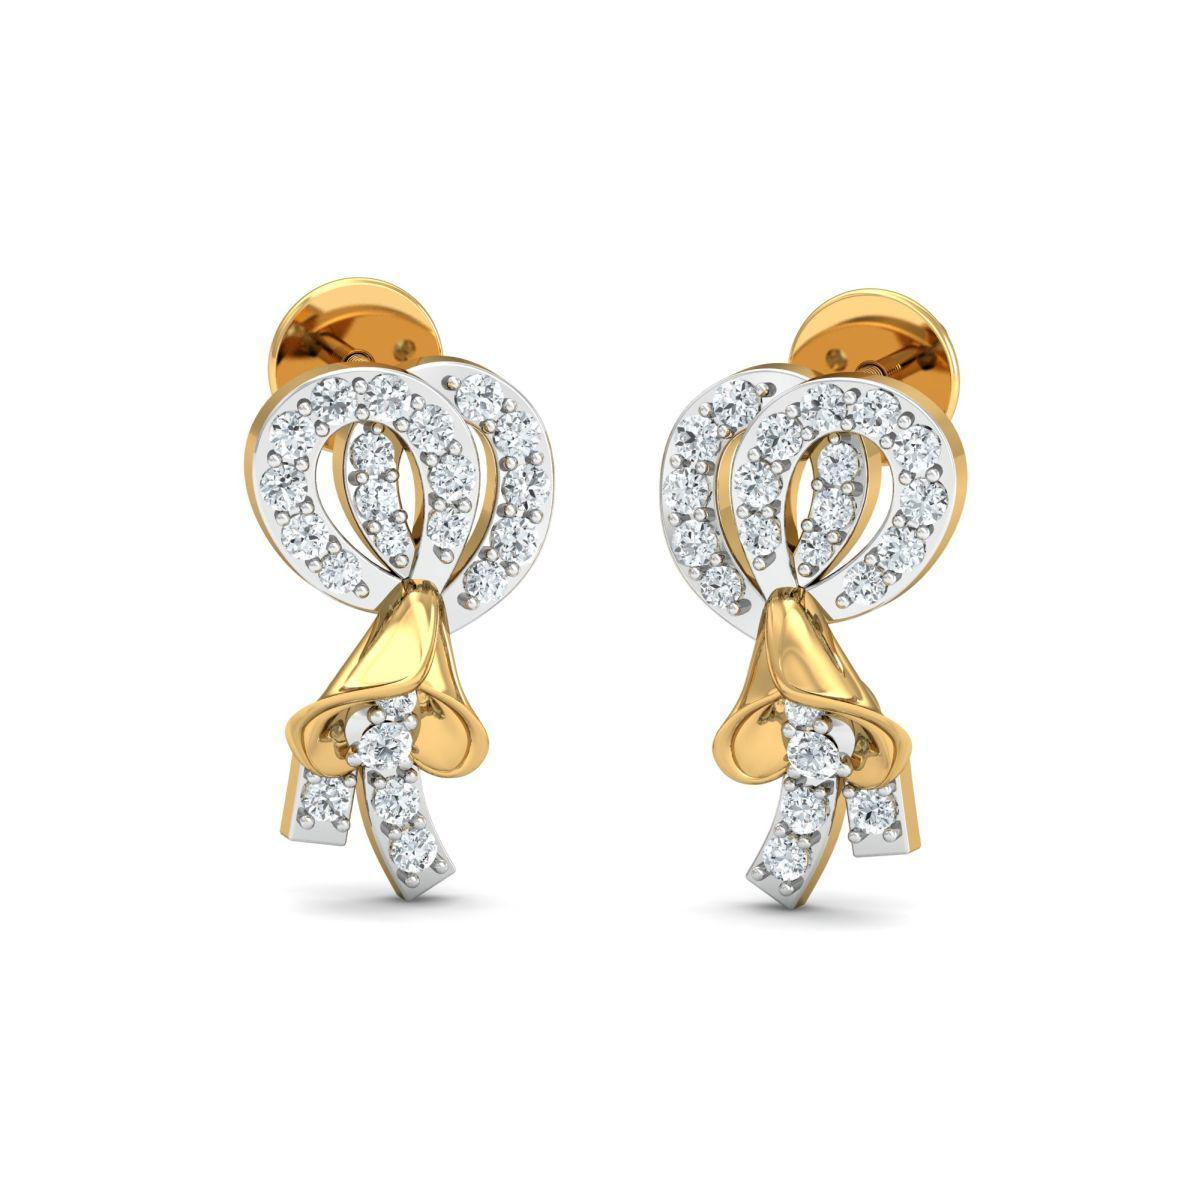 Diamoire Jewels 18kt Yellow Gold 0.07ct Pave Diamond Infinity Earrings II dAXvmtywlq